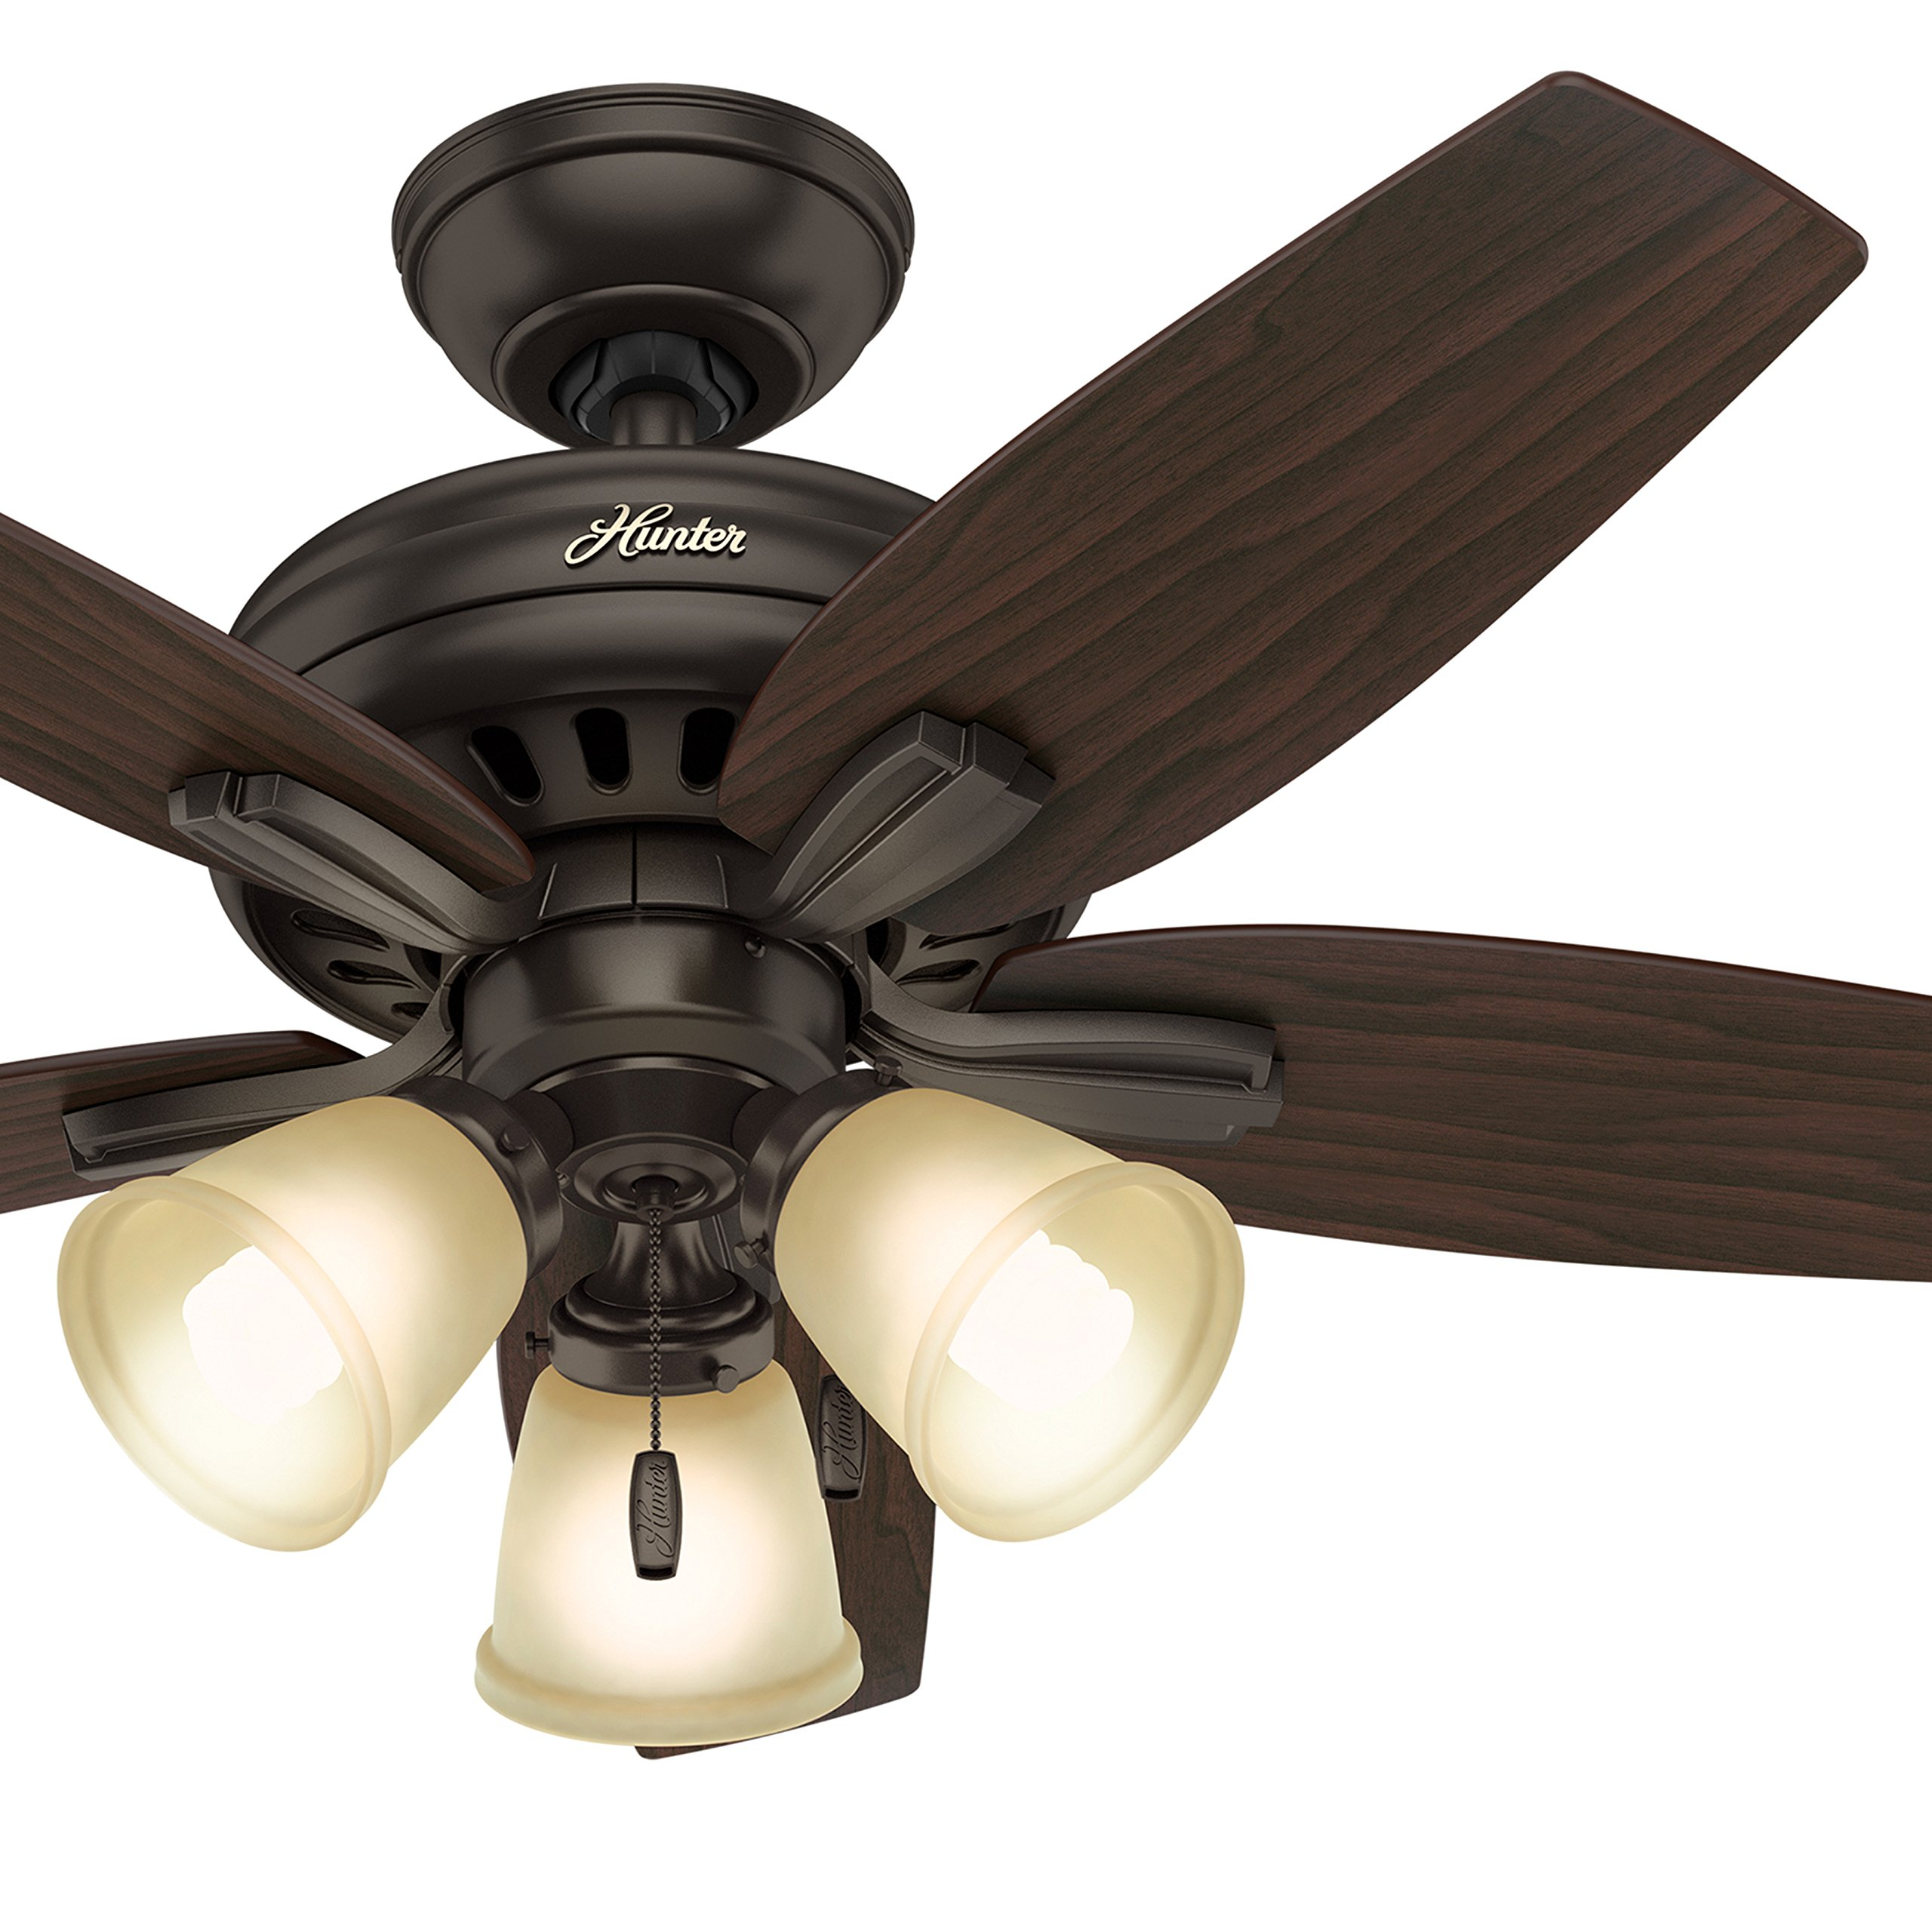 Hunter 42 in. Ceiling Fan in Premier Bronze Includes Three-Light Fitter with Cased White Glass (Certified Refurbished)